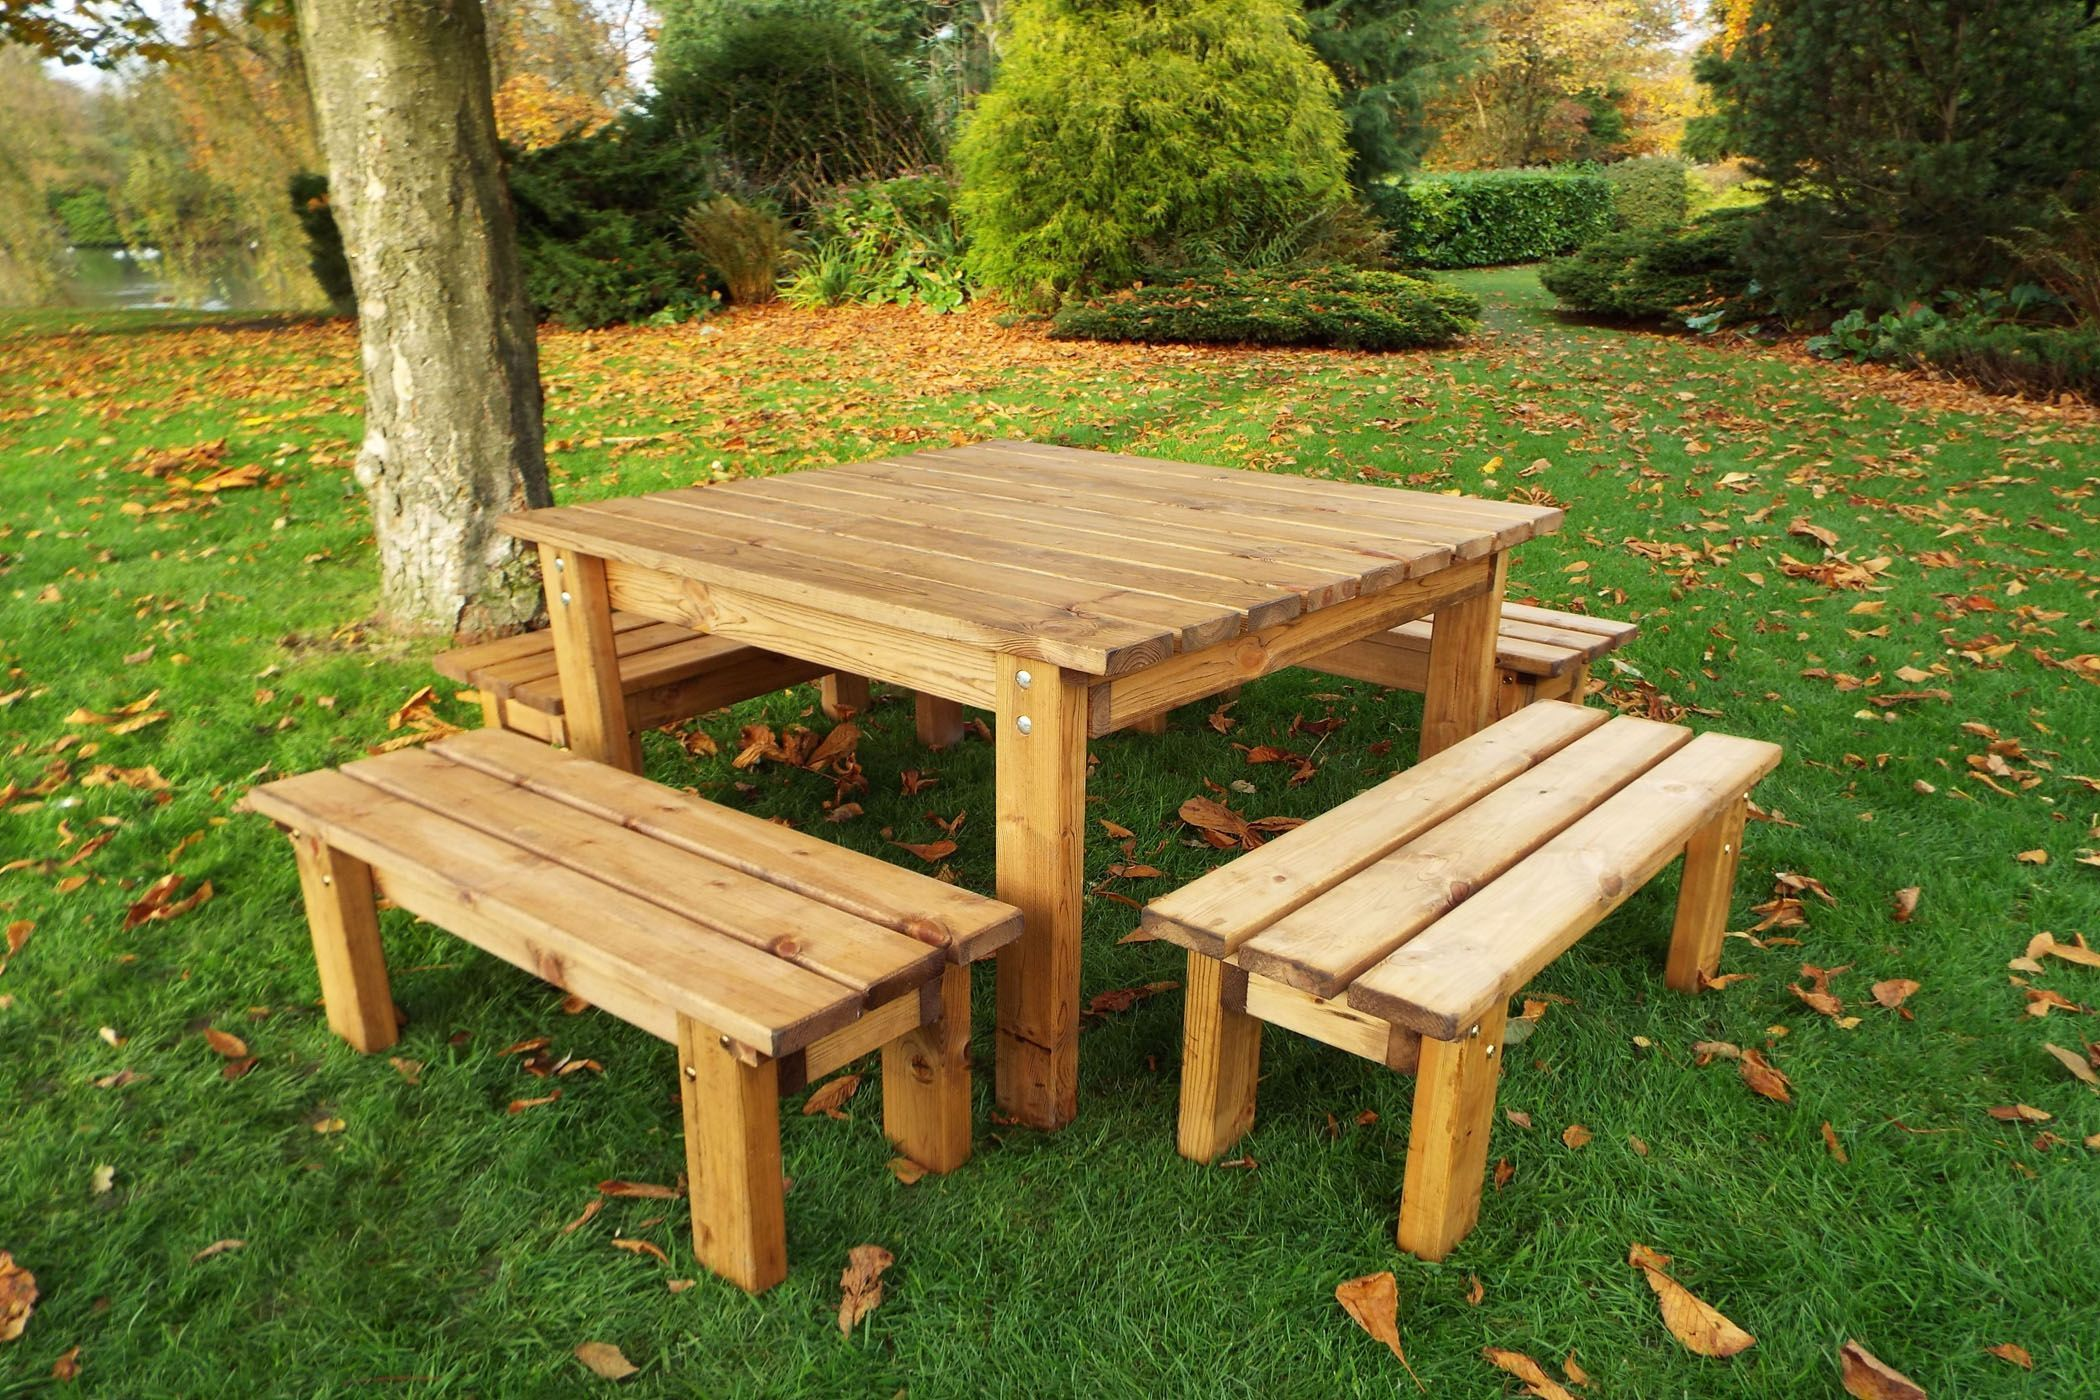 8 Seater Wooden Outdoor Bench Dining Set Childrens Garden Furniture Kids Outdoor Furniture Garden Furniture Sets